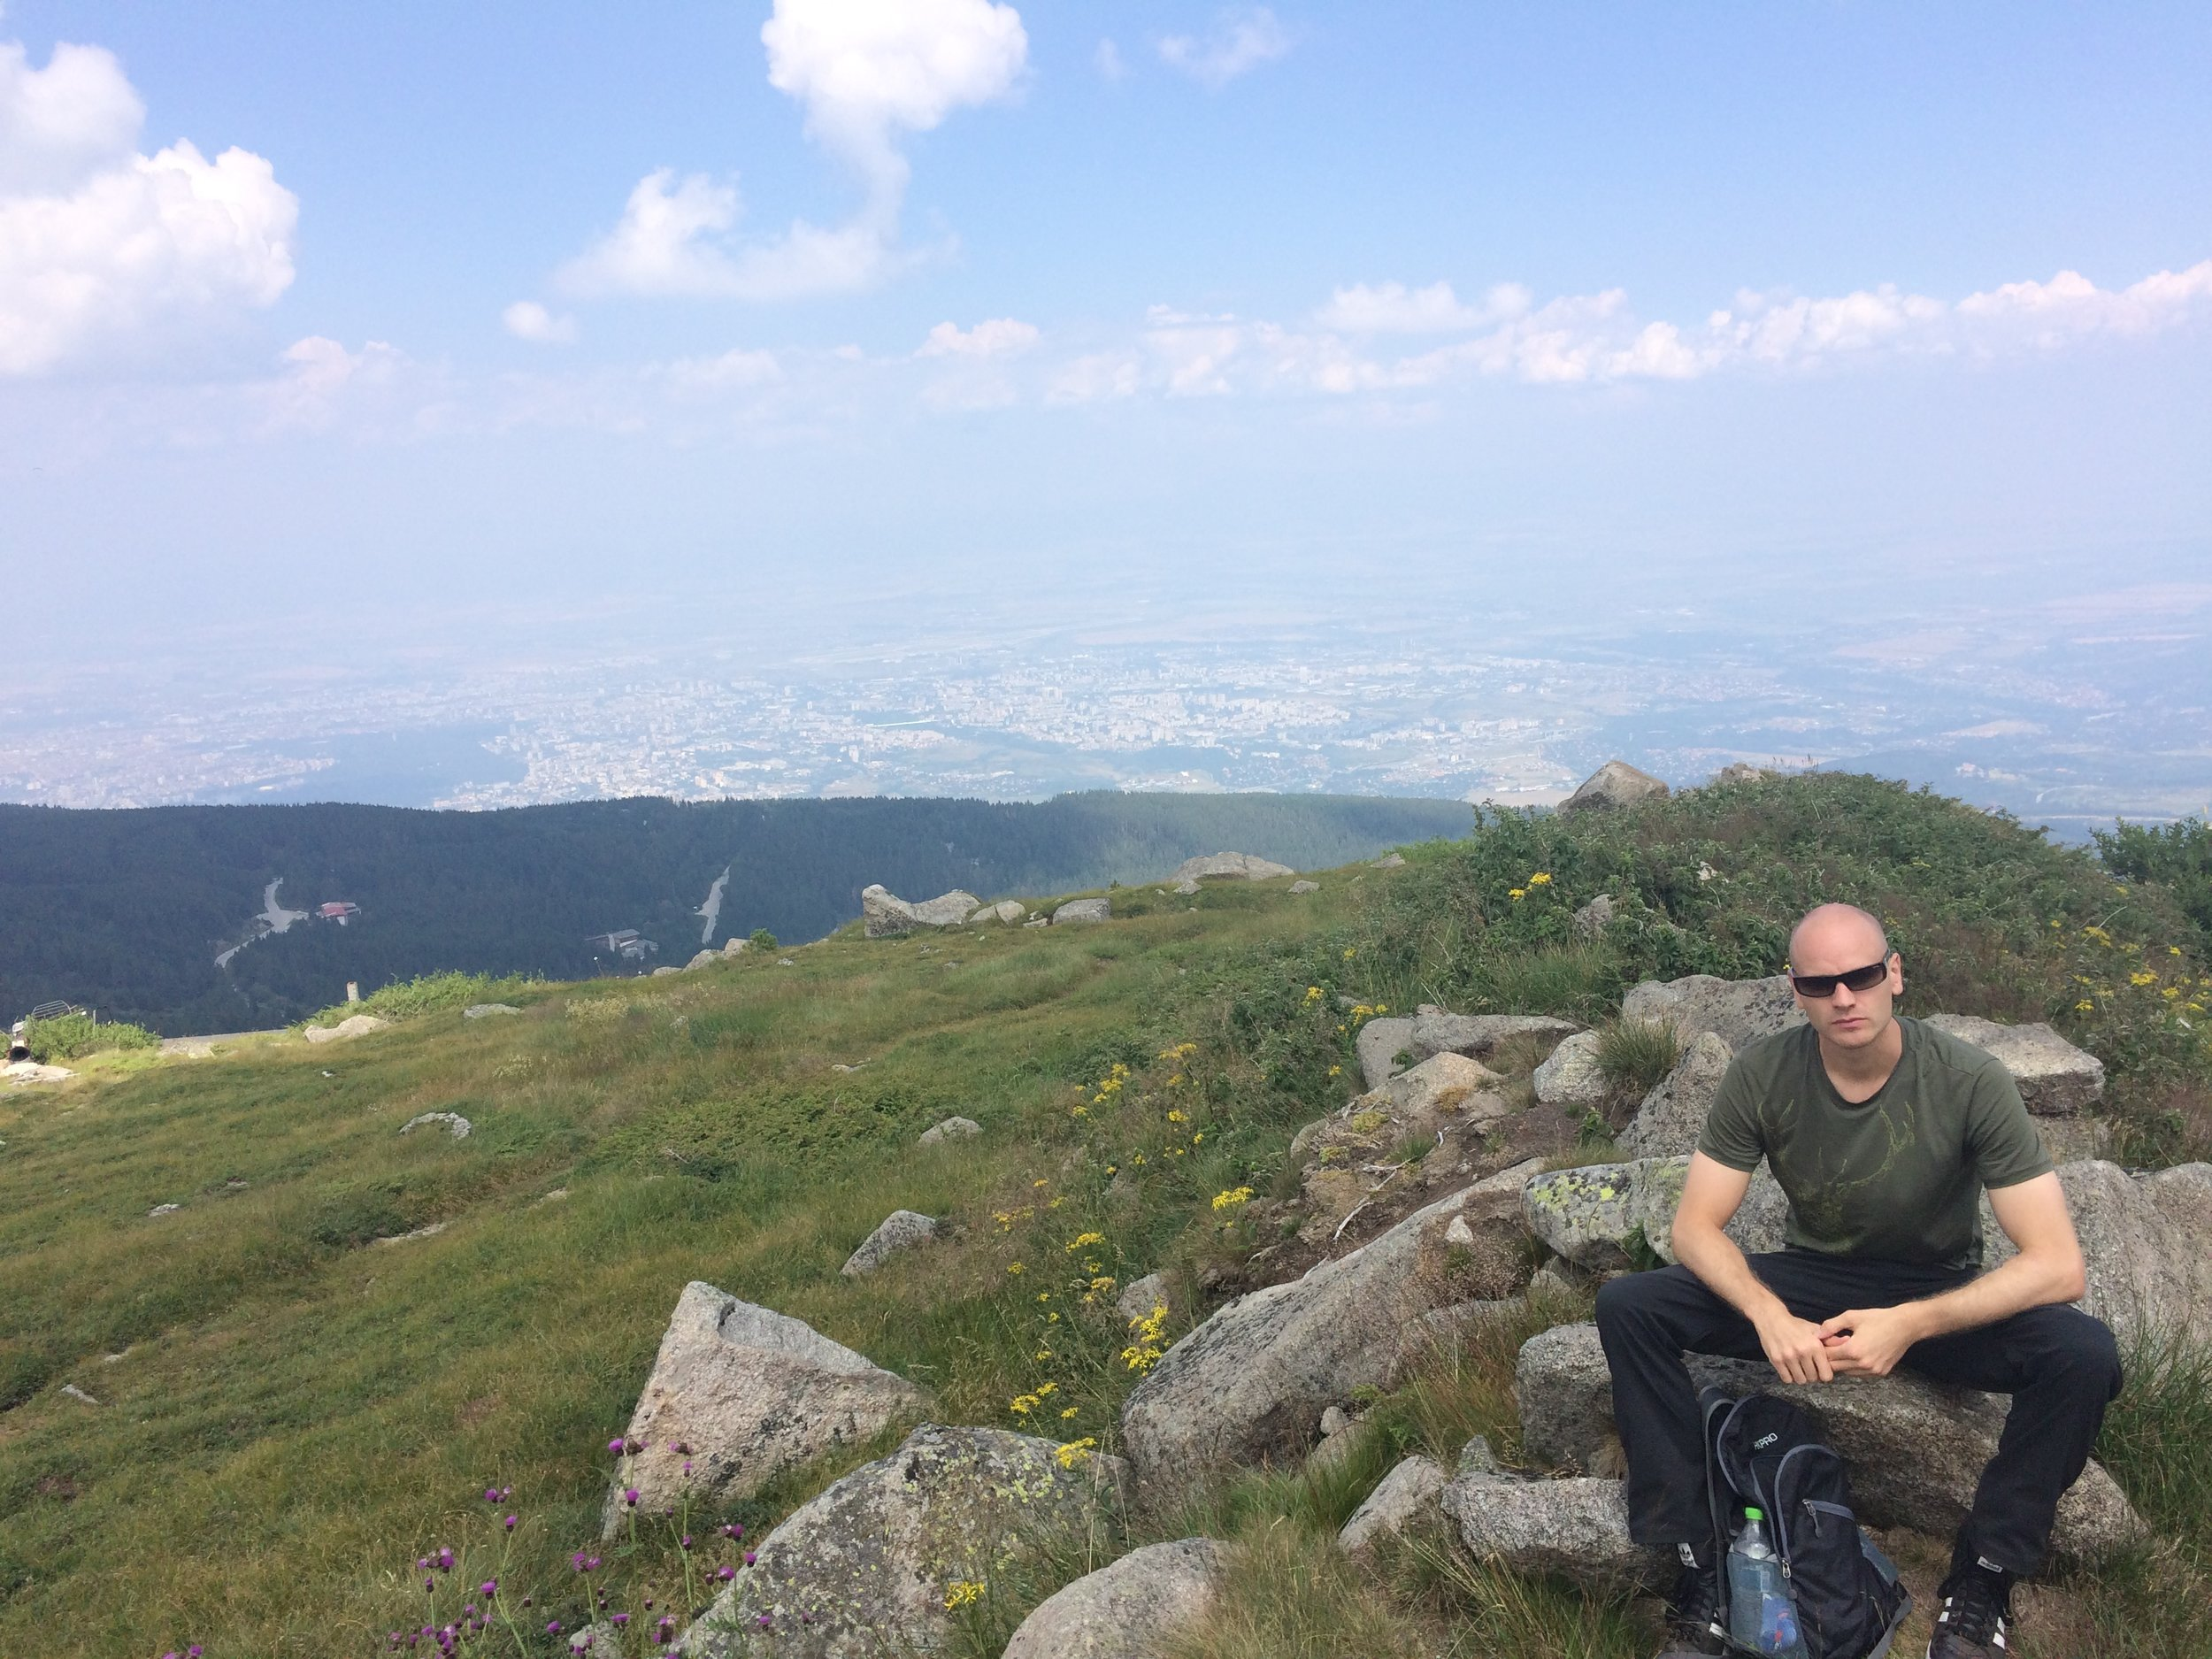 Summit of Mt. Vitosha with Sofia in the background